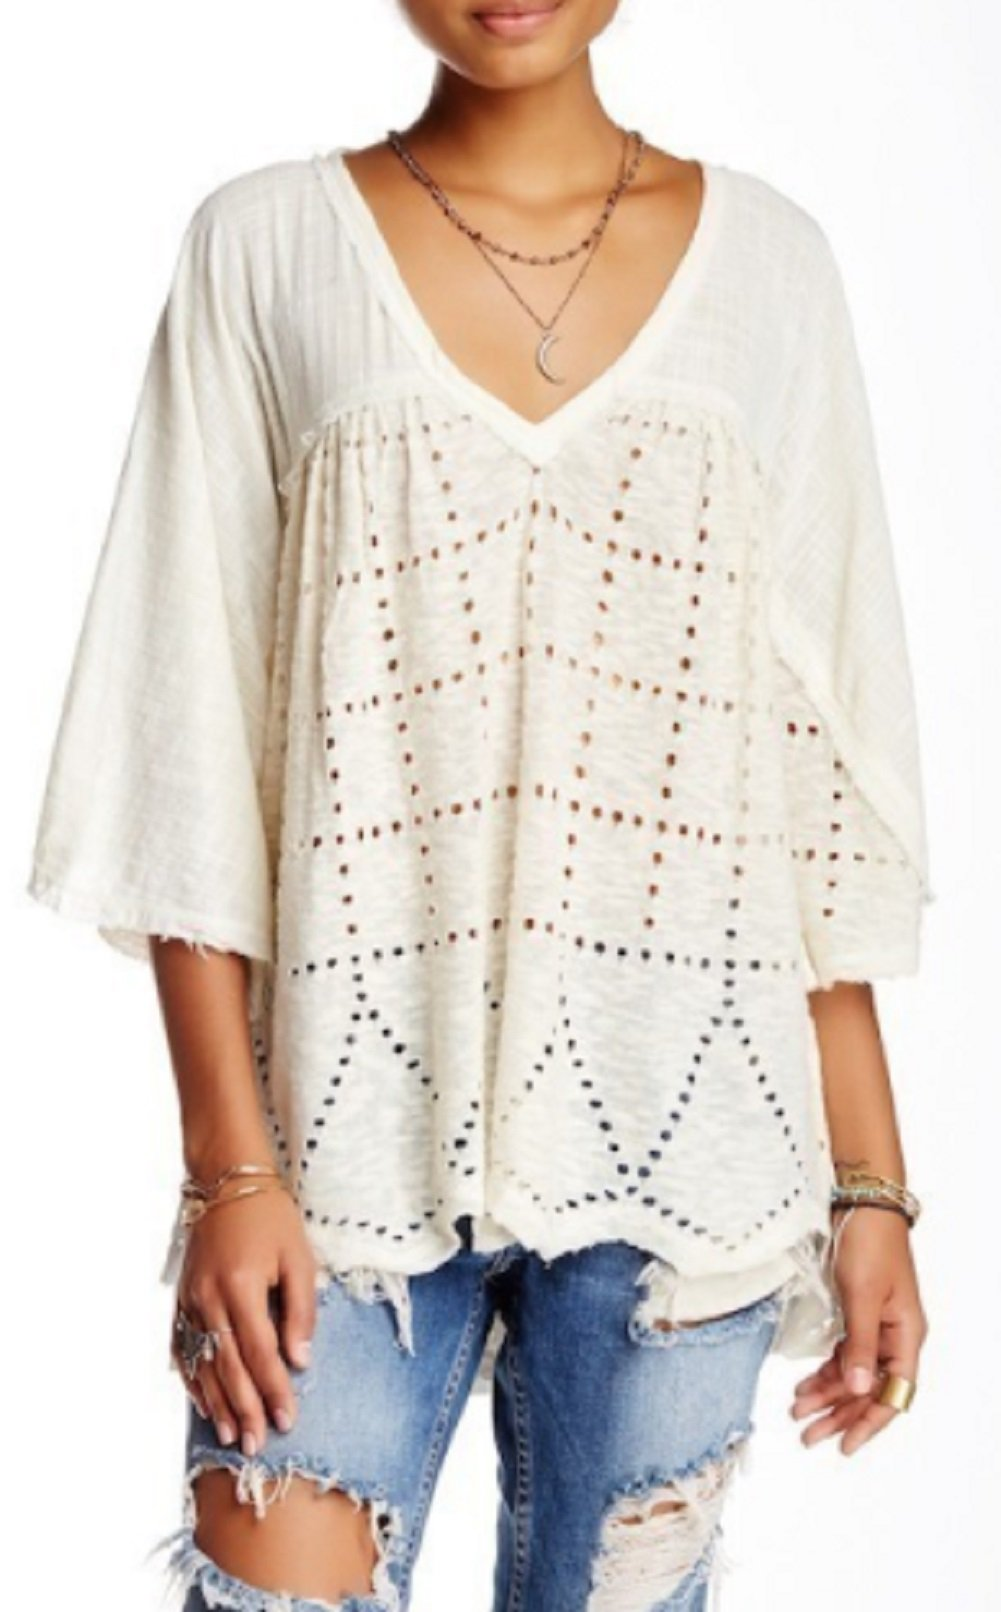 Free People 7471 Womens Summer Lovin' Ivory Perforated V-neck Blouse Top